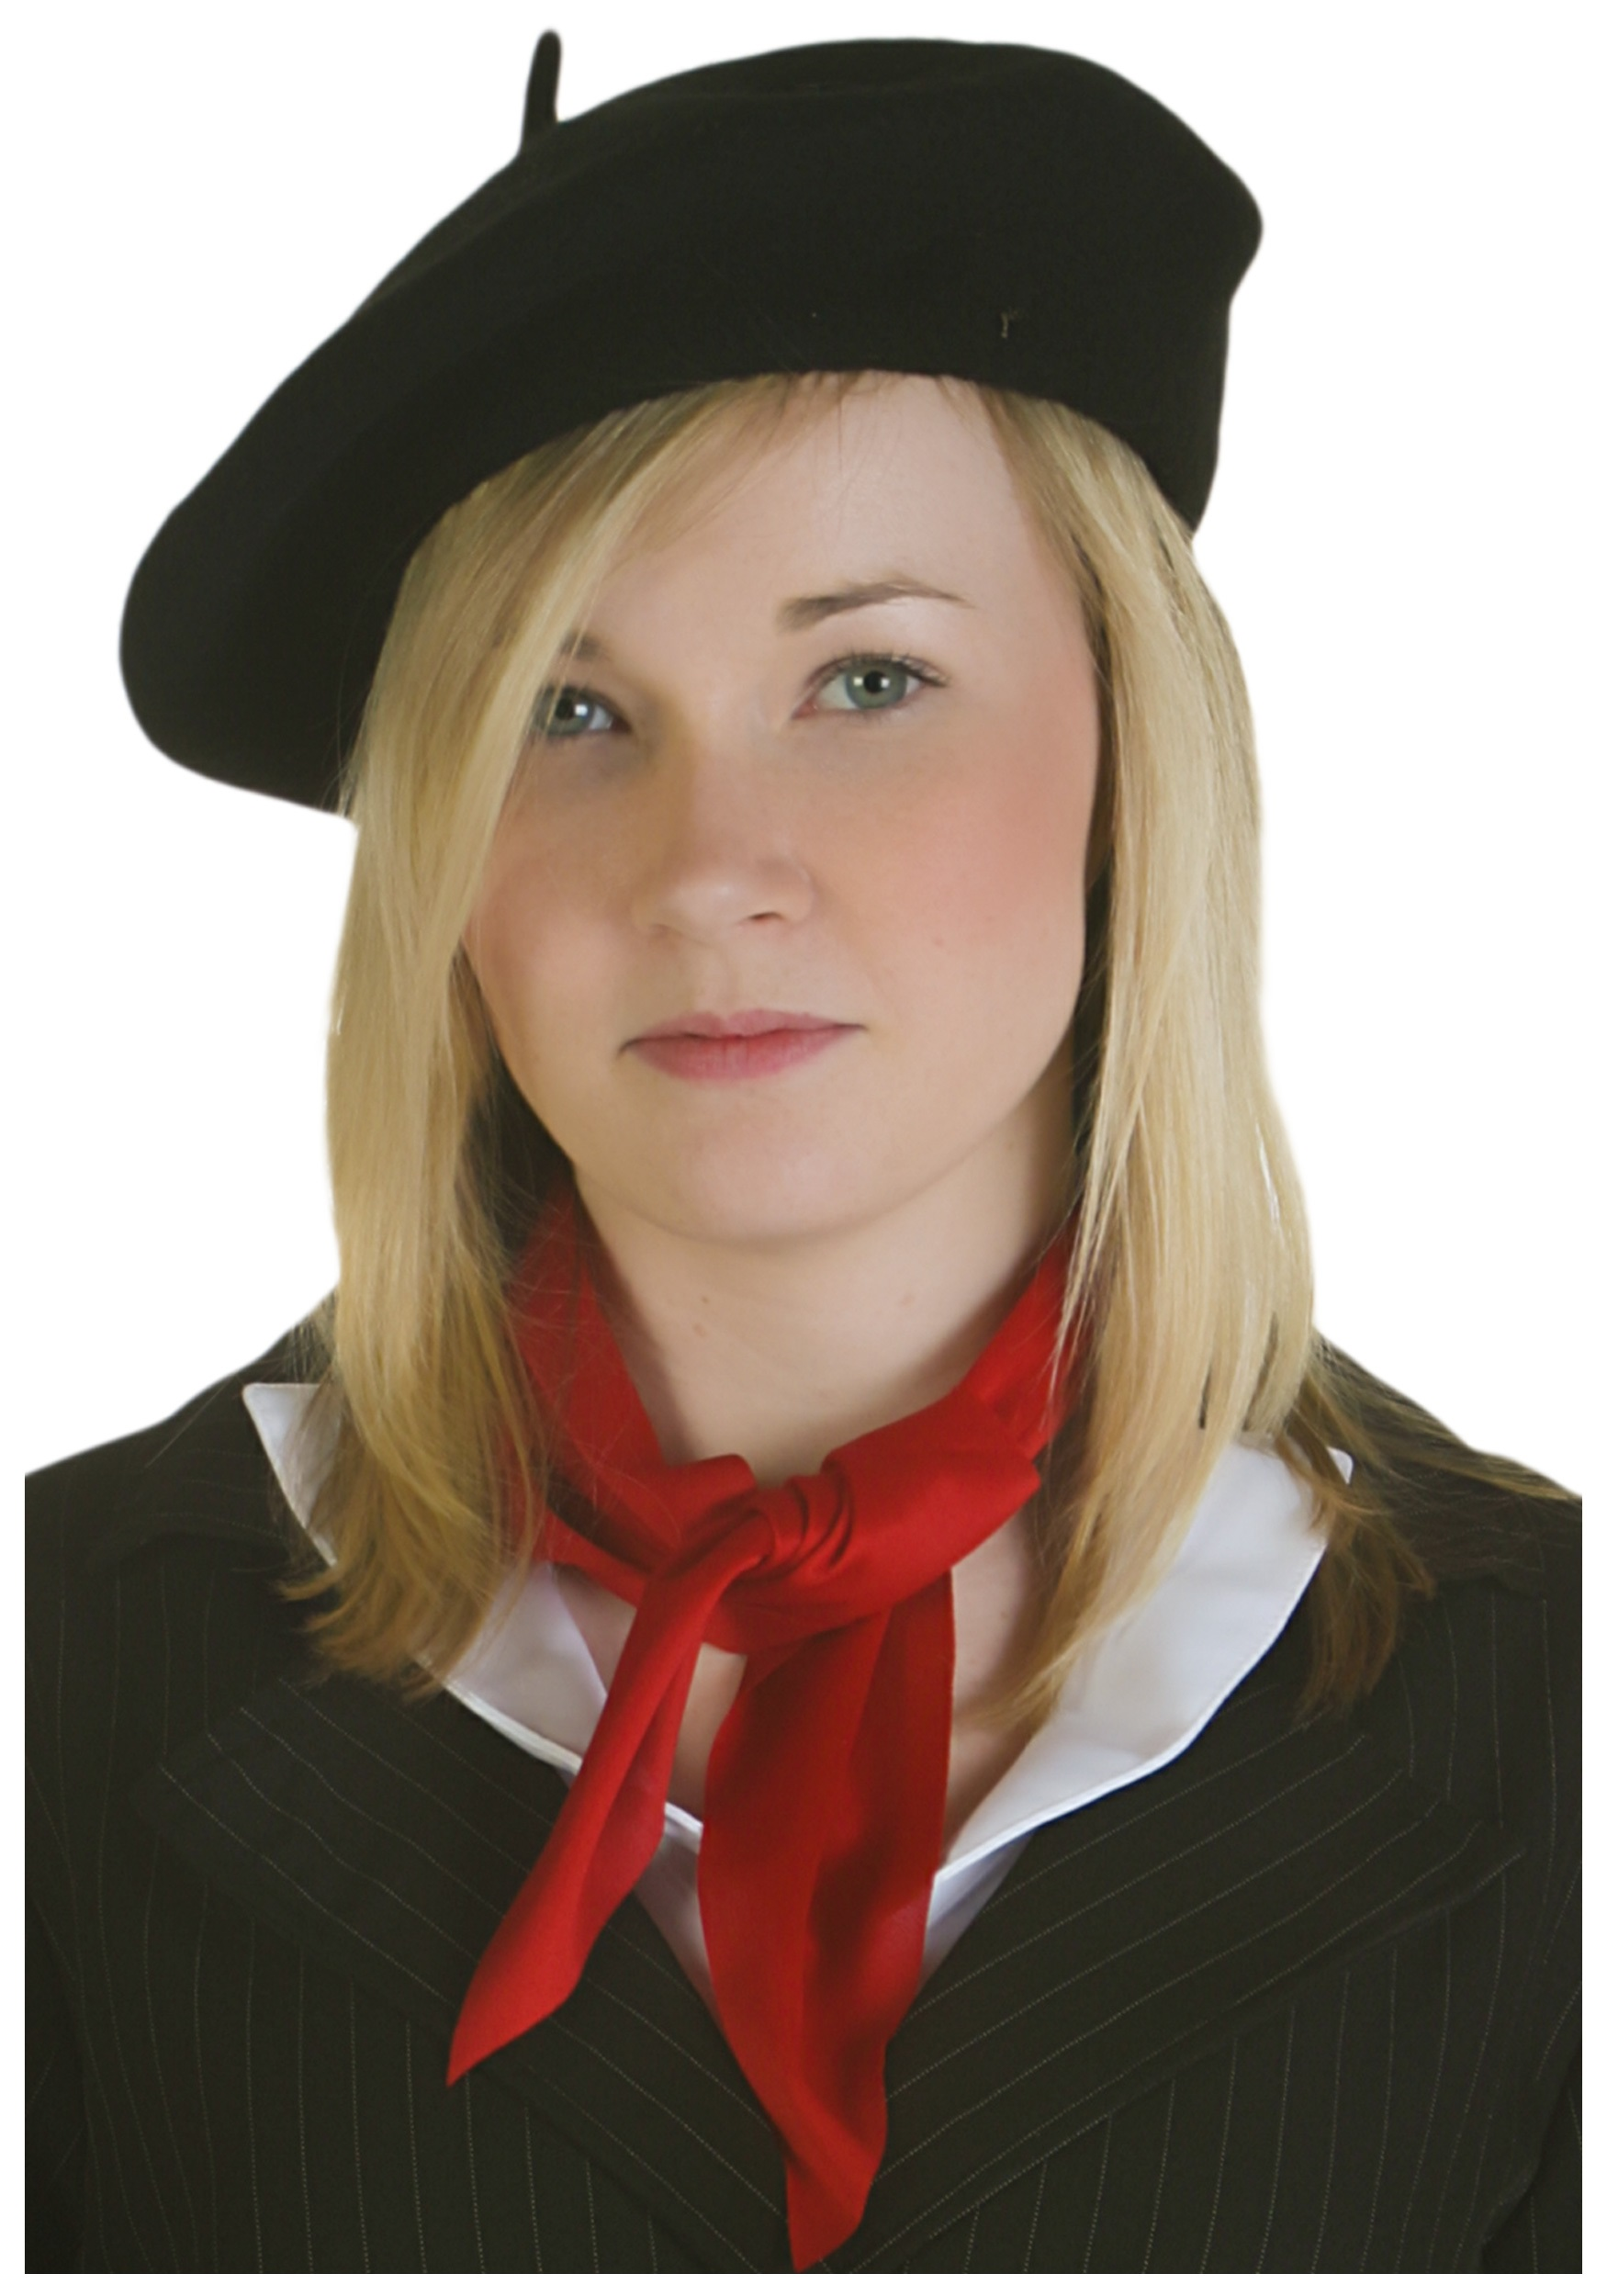 French Costume Beret - Accessories for International Costumes